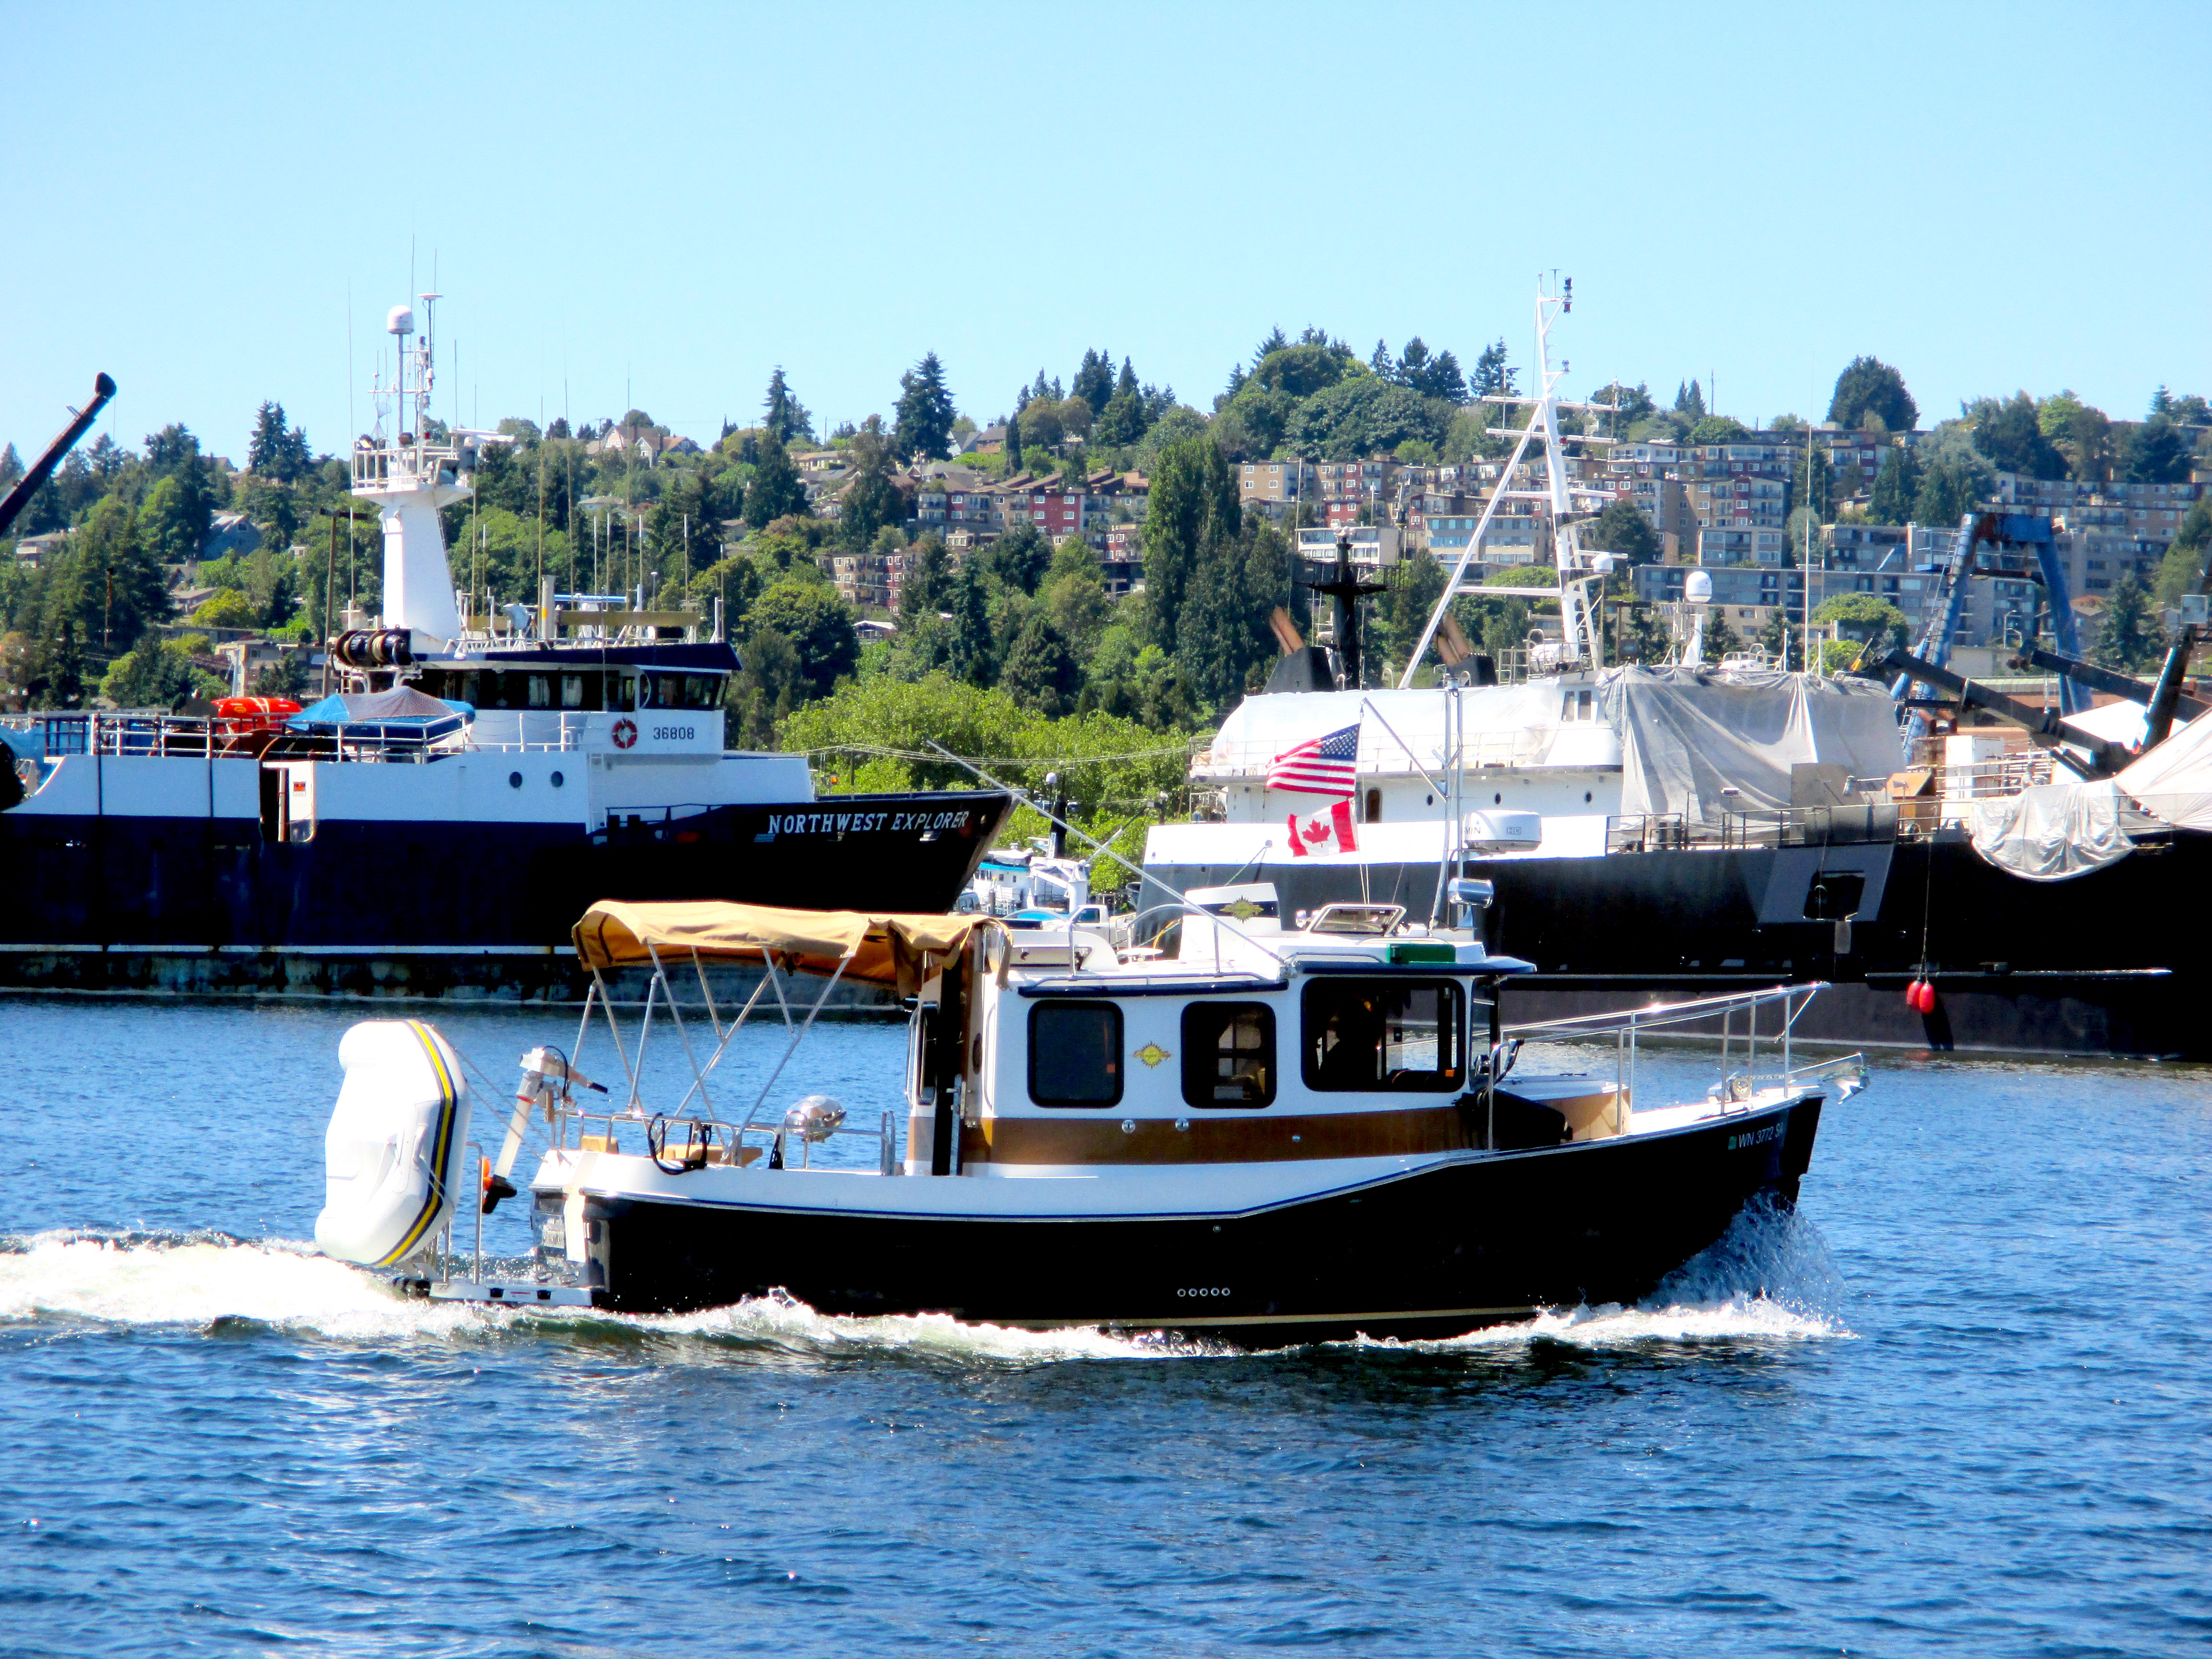 Nw powerboats salty dog boating news ballard seattle for Fishing boats seattle